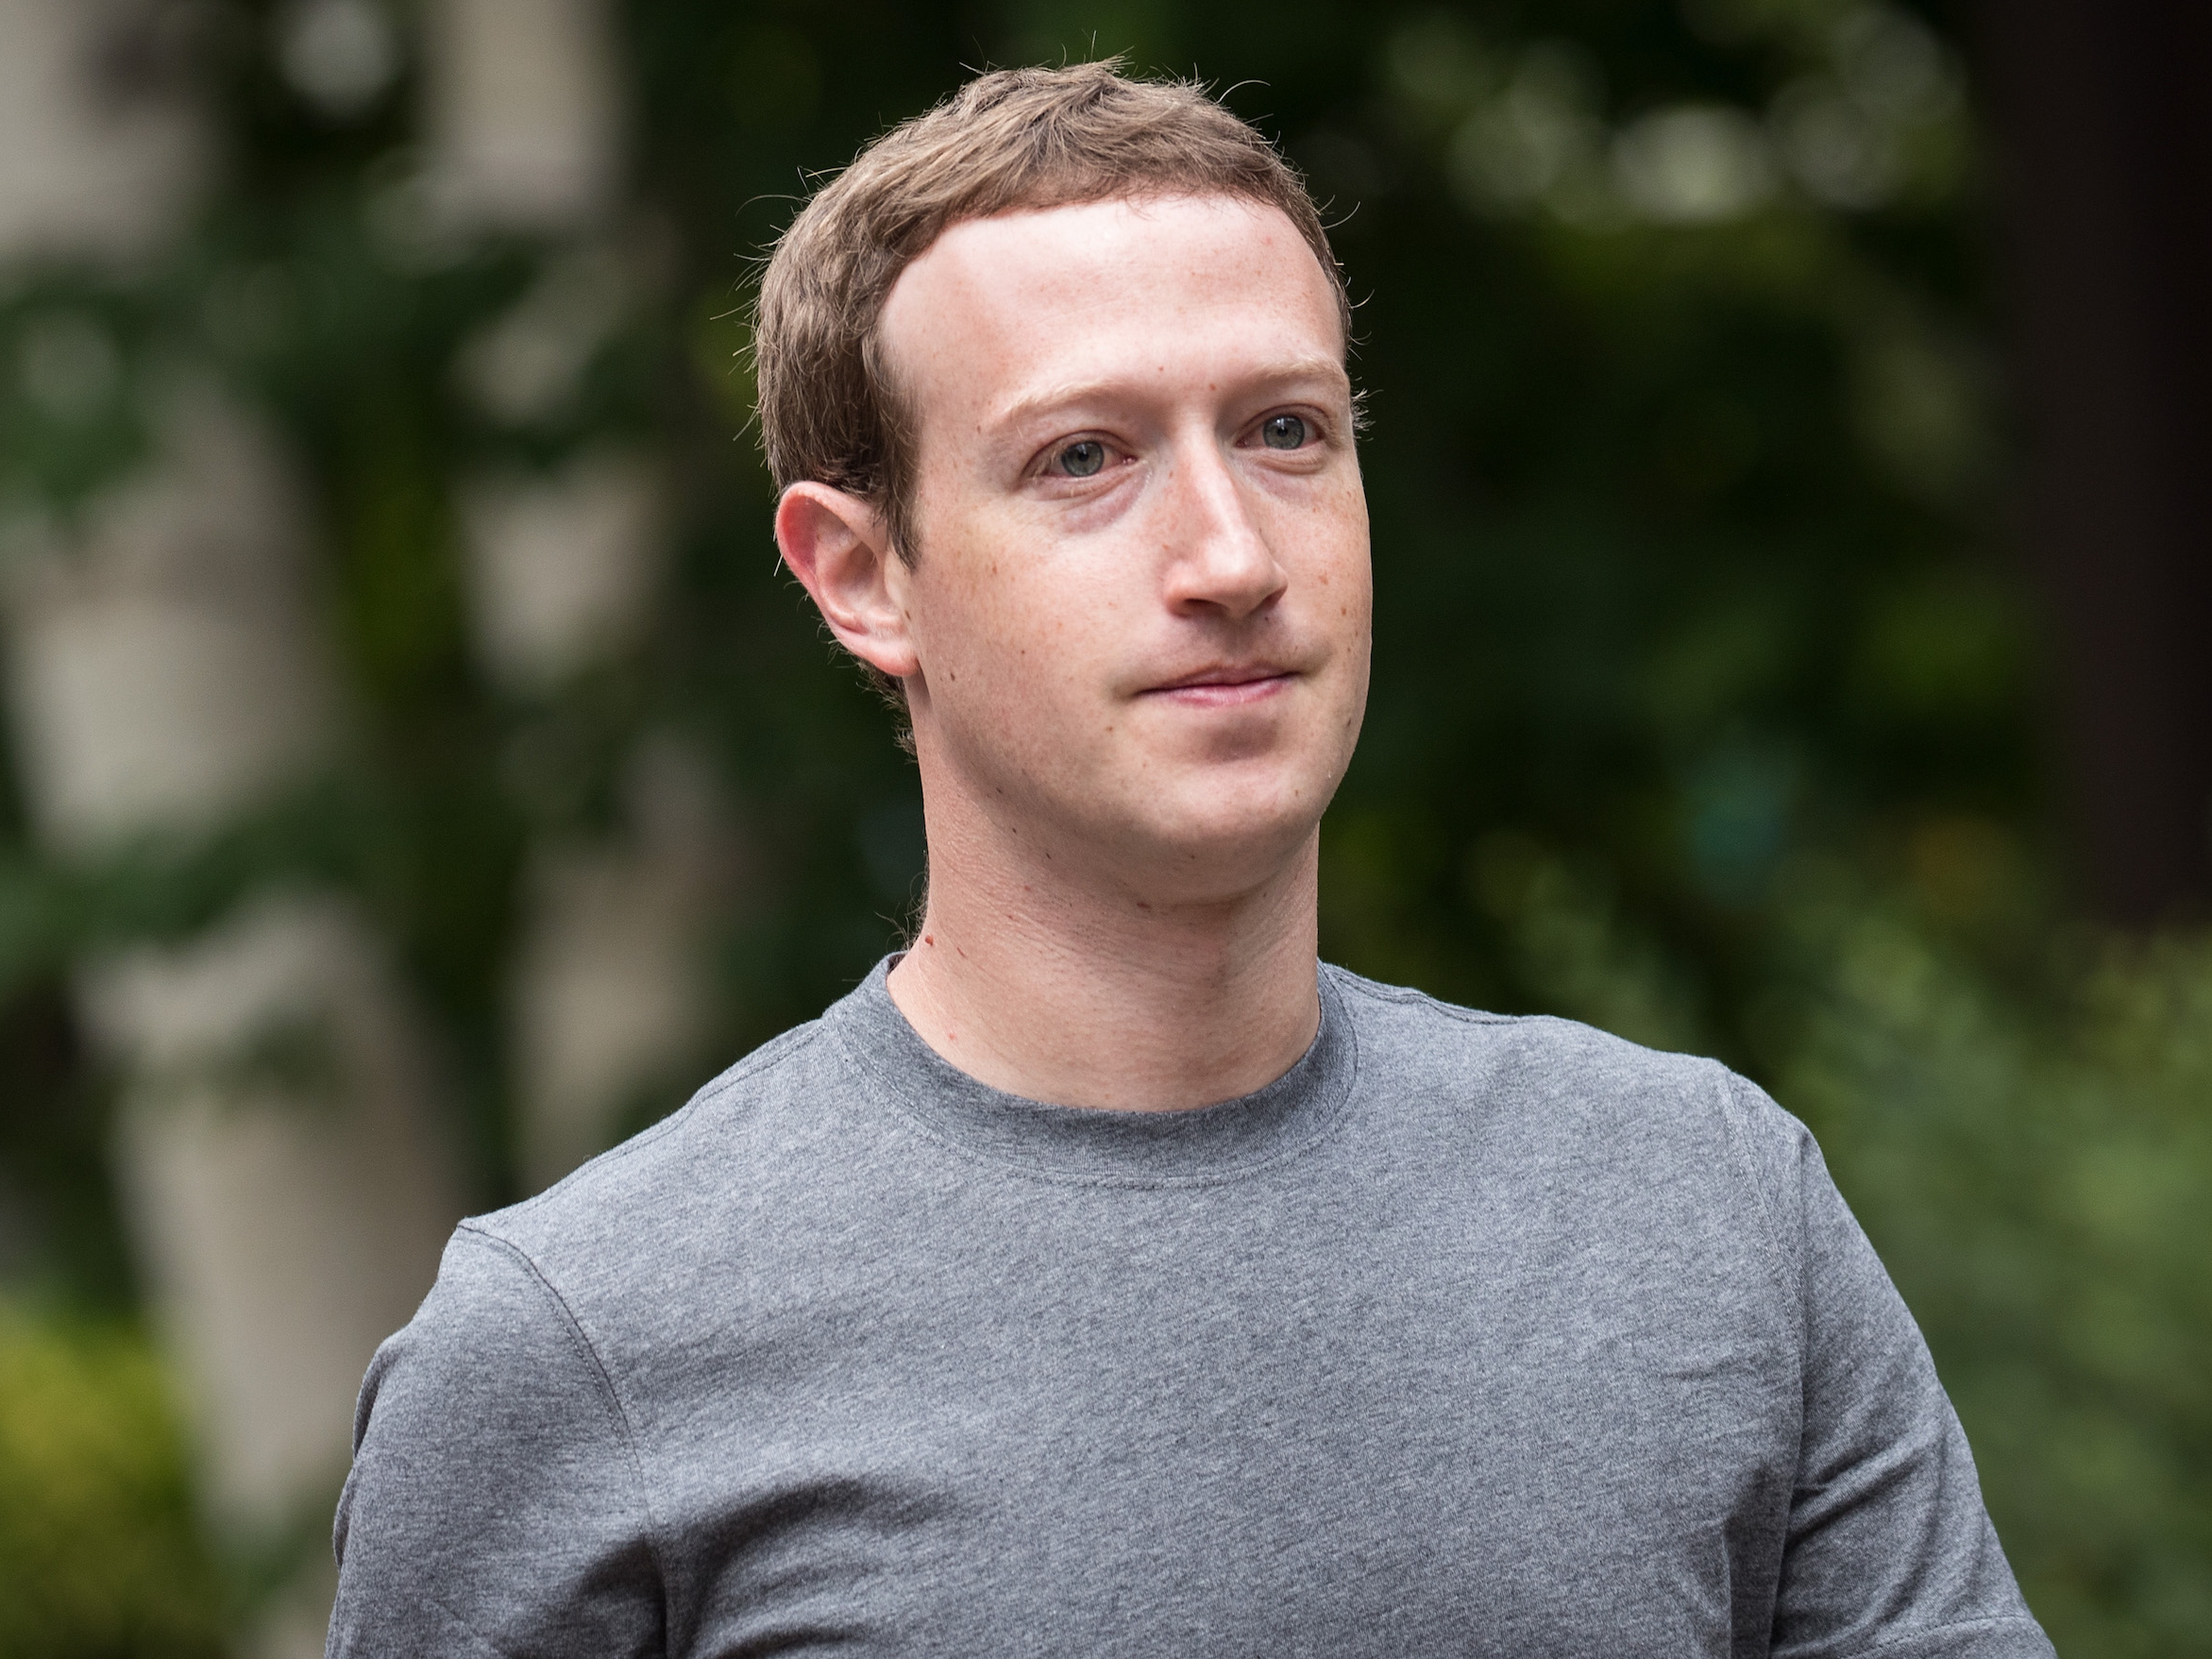 States United Executive Chief Mark Zuckerberg Election, PNG Image